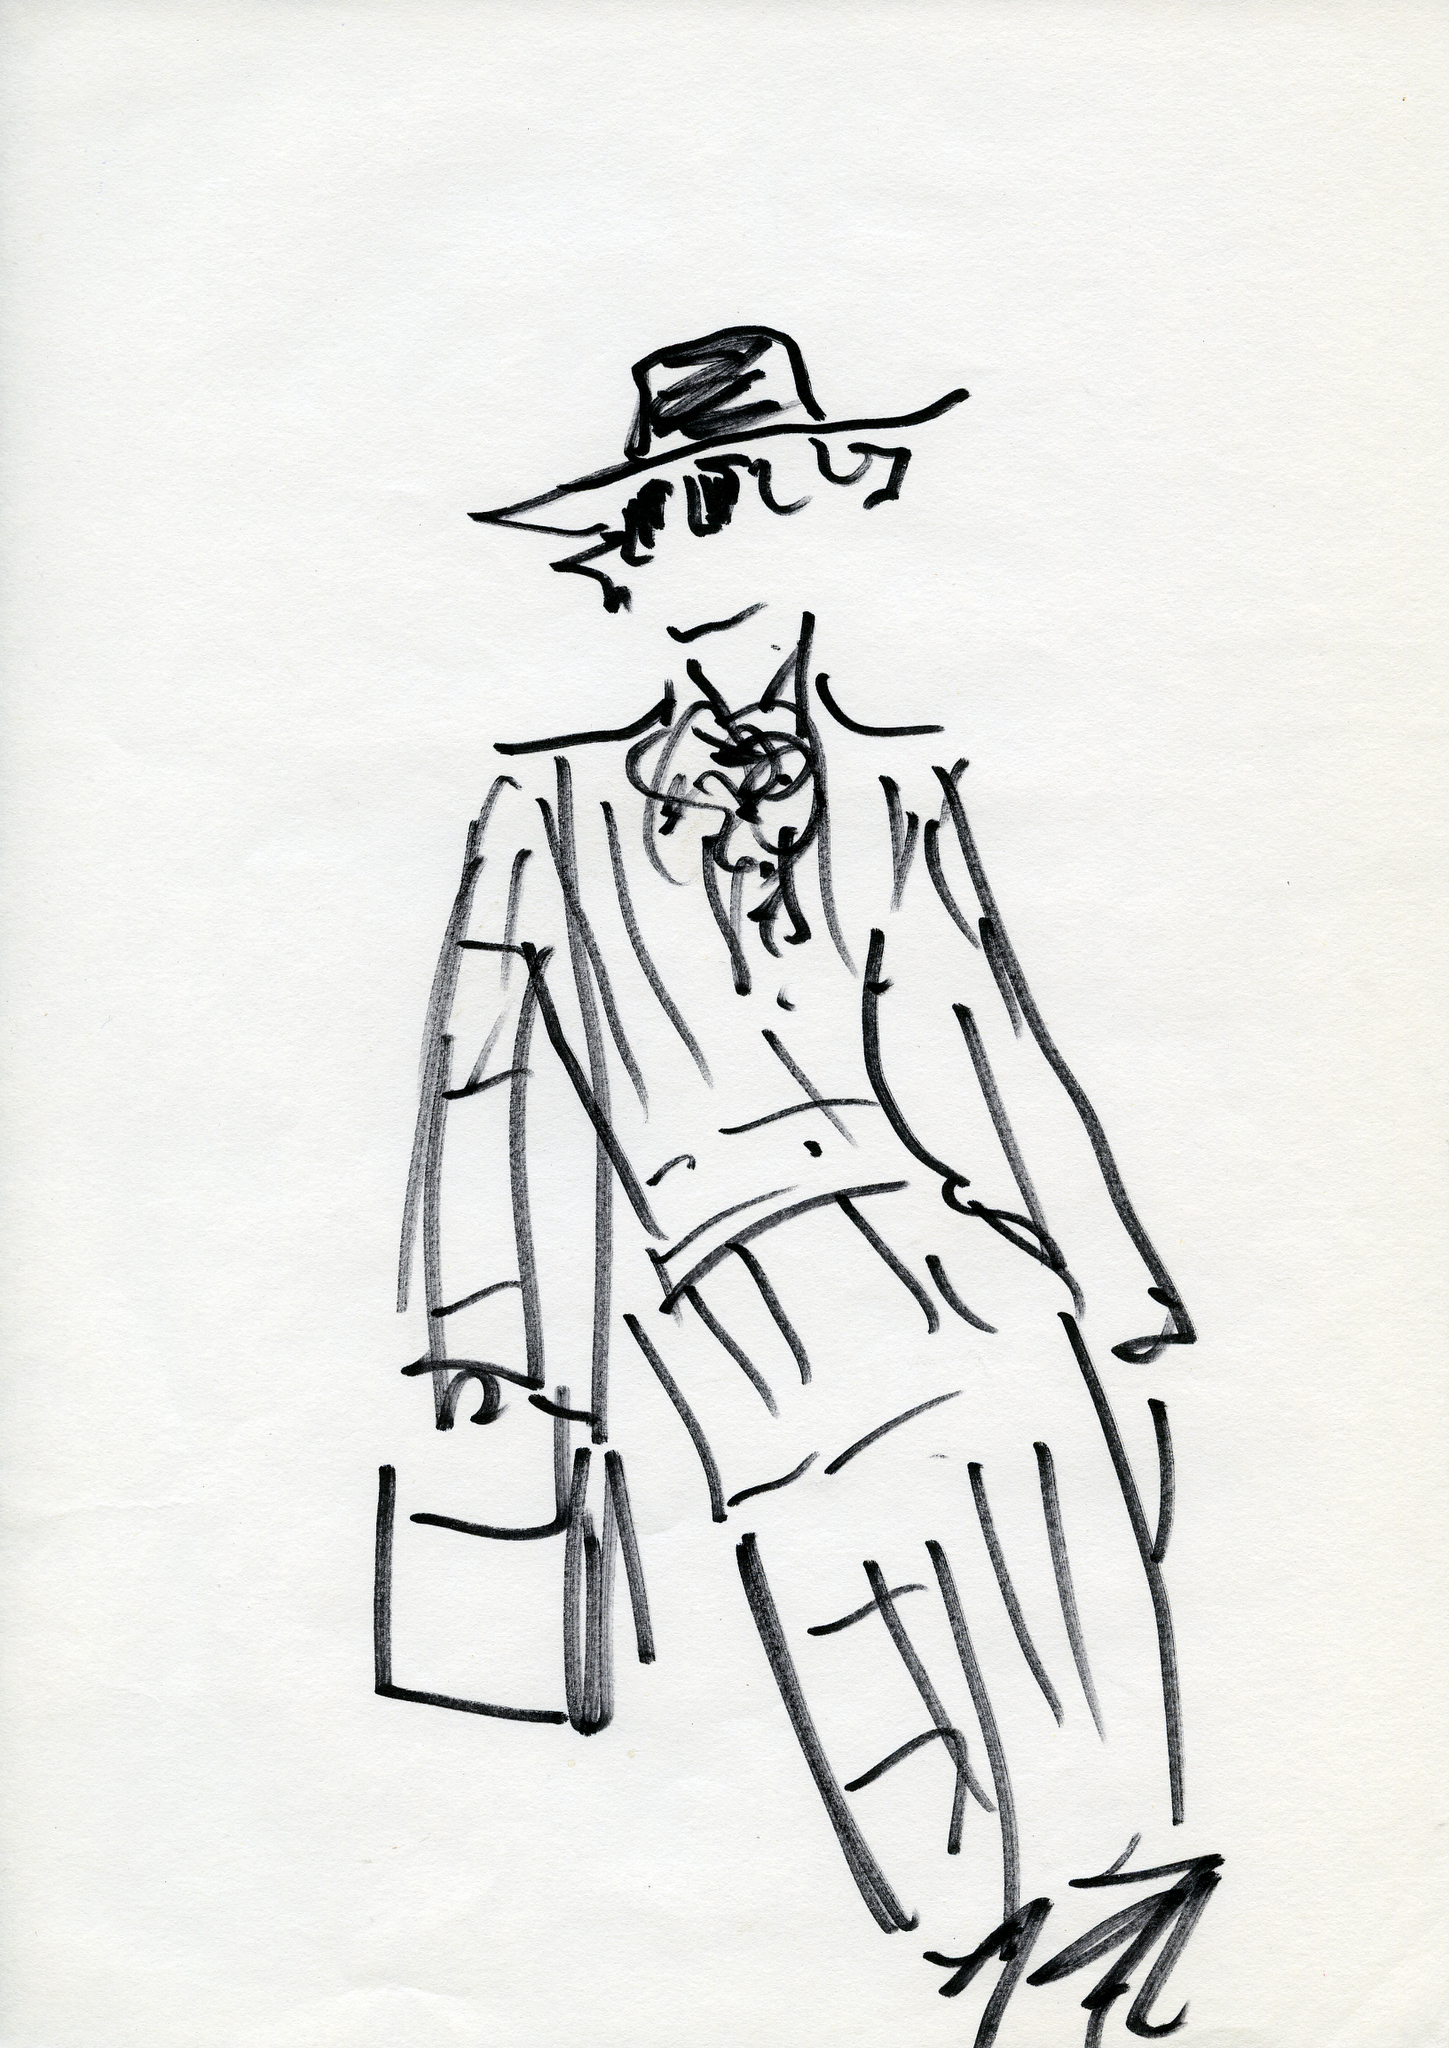 A sketch by Karl Lagerfeld in the outfit he wore on his first day at Fendi in 1965: Cerruti hat, Norfolk jacket in a tweed speckled with red and yellow, culottes, boots and a squarish bag he bought in Milan.